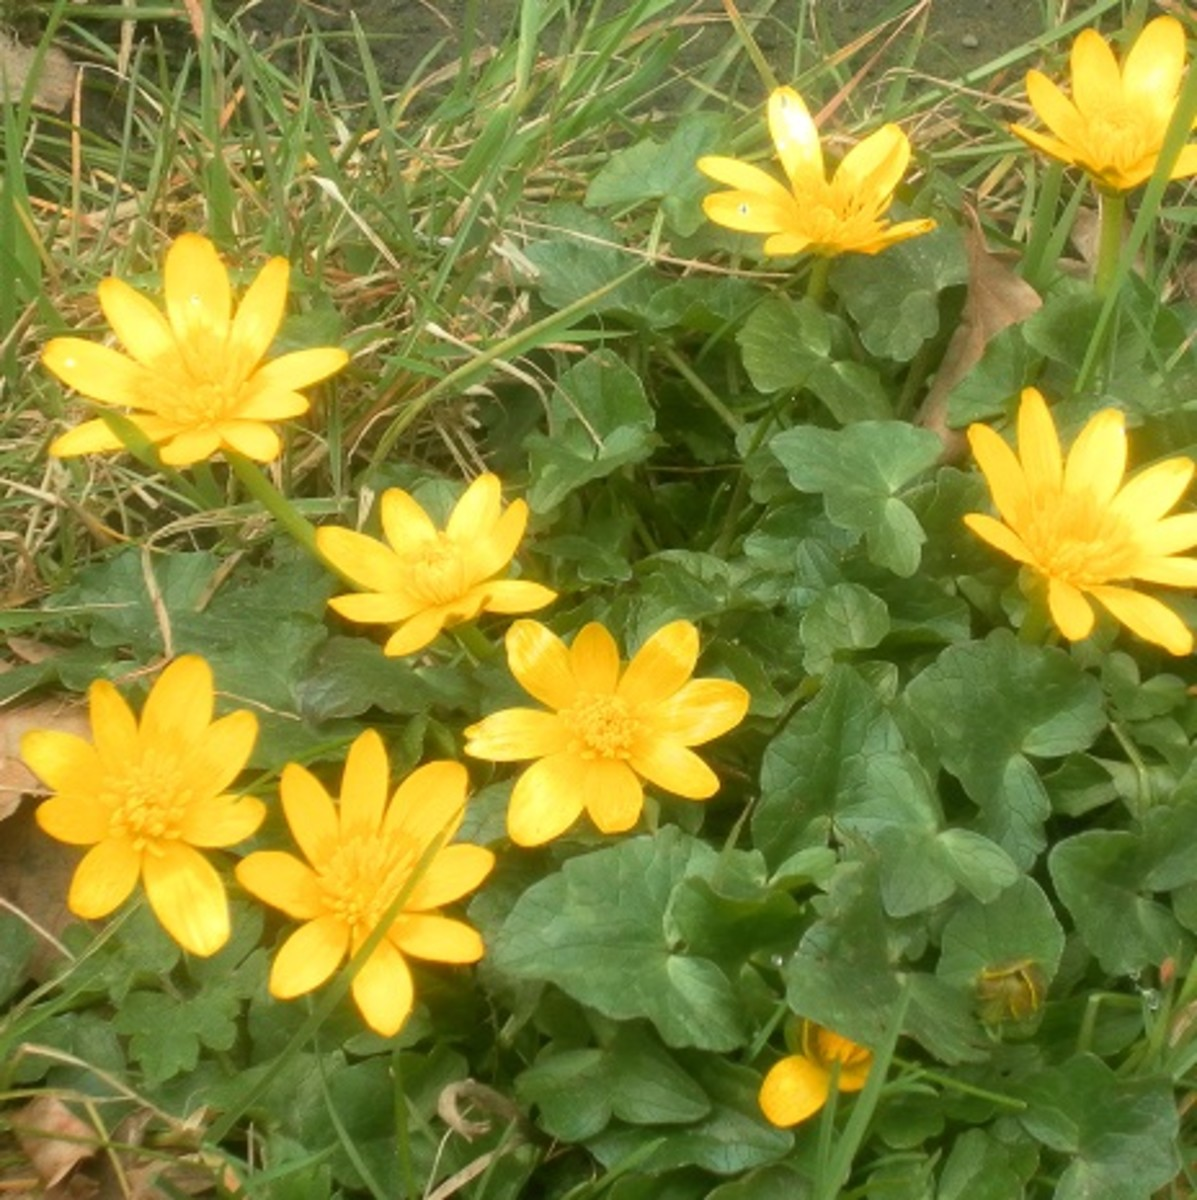 historically, lesser celandine has been used to treat digestive disorders and piles.